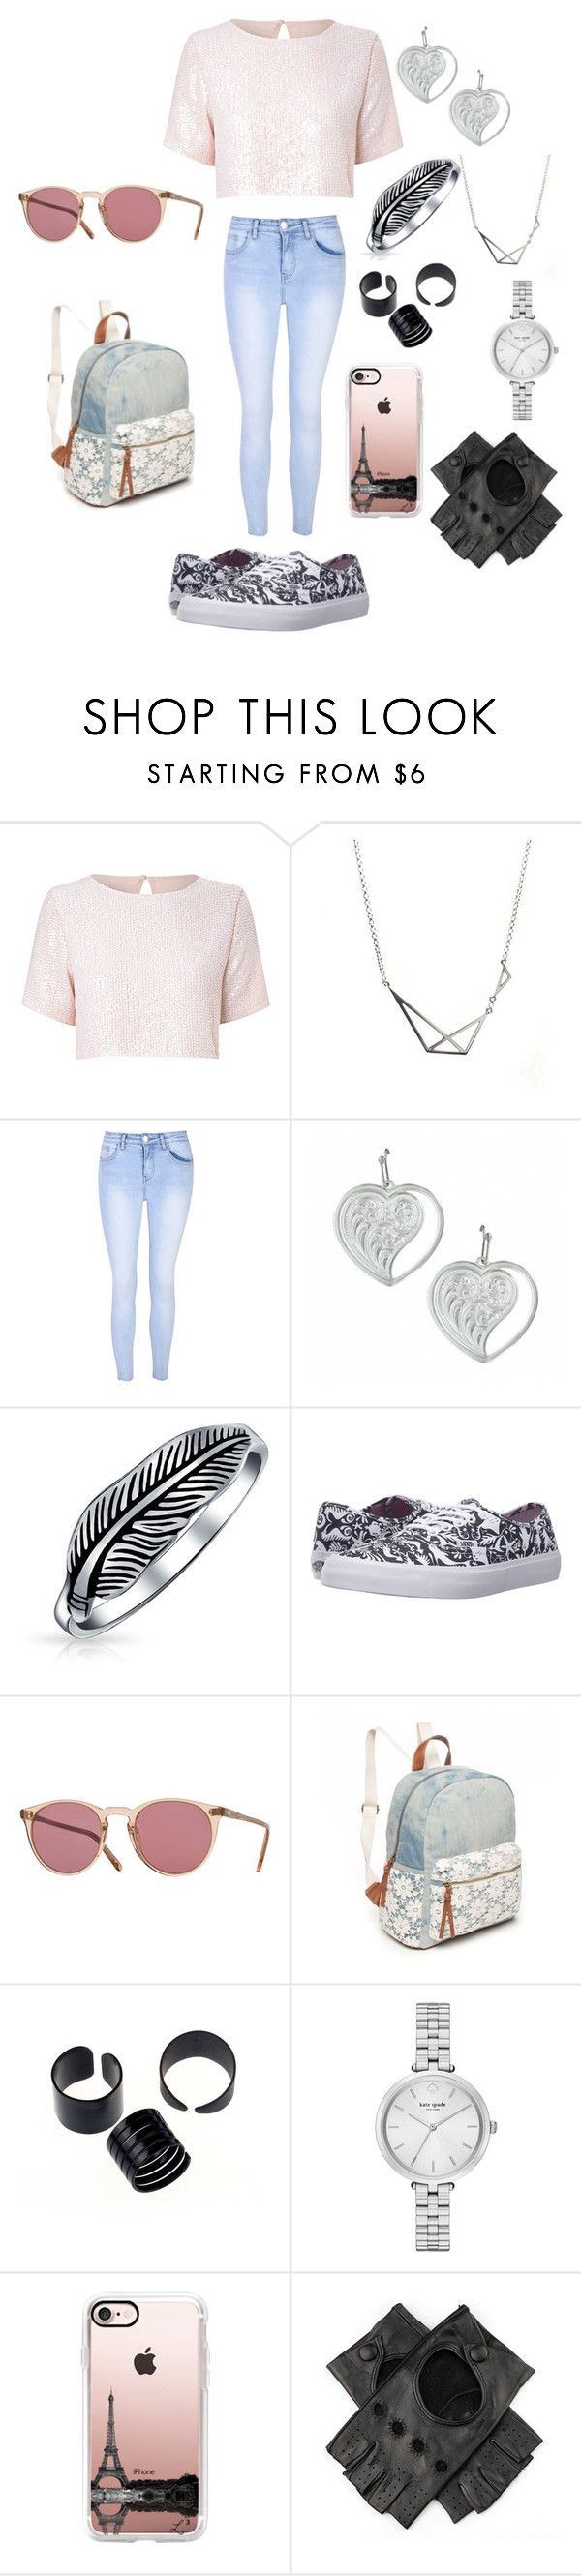 """""""Untitled #385"""" by shoialshammeri ❤ liked on Polyvore featuring True Decadence, Glamorous, Bling Jewelry, Vans, Oliver Peoples, Red Camel, Kate Spade, Casetify and Black"""